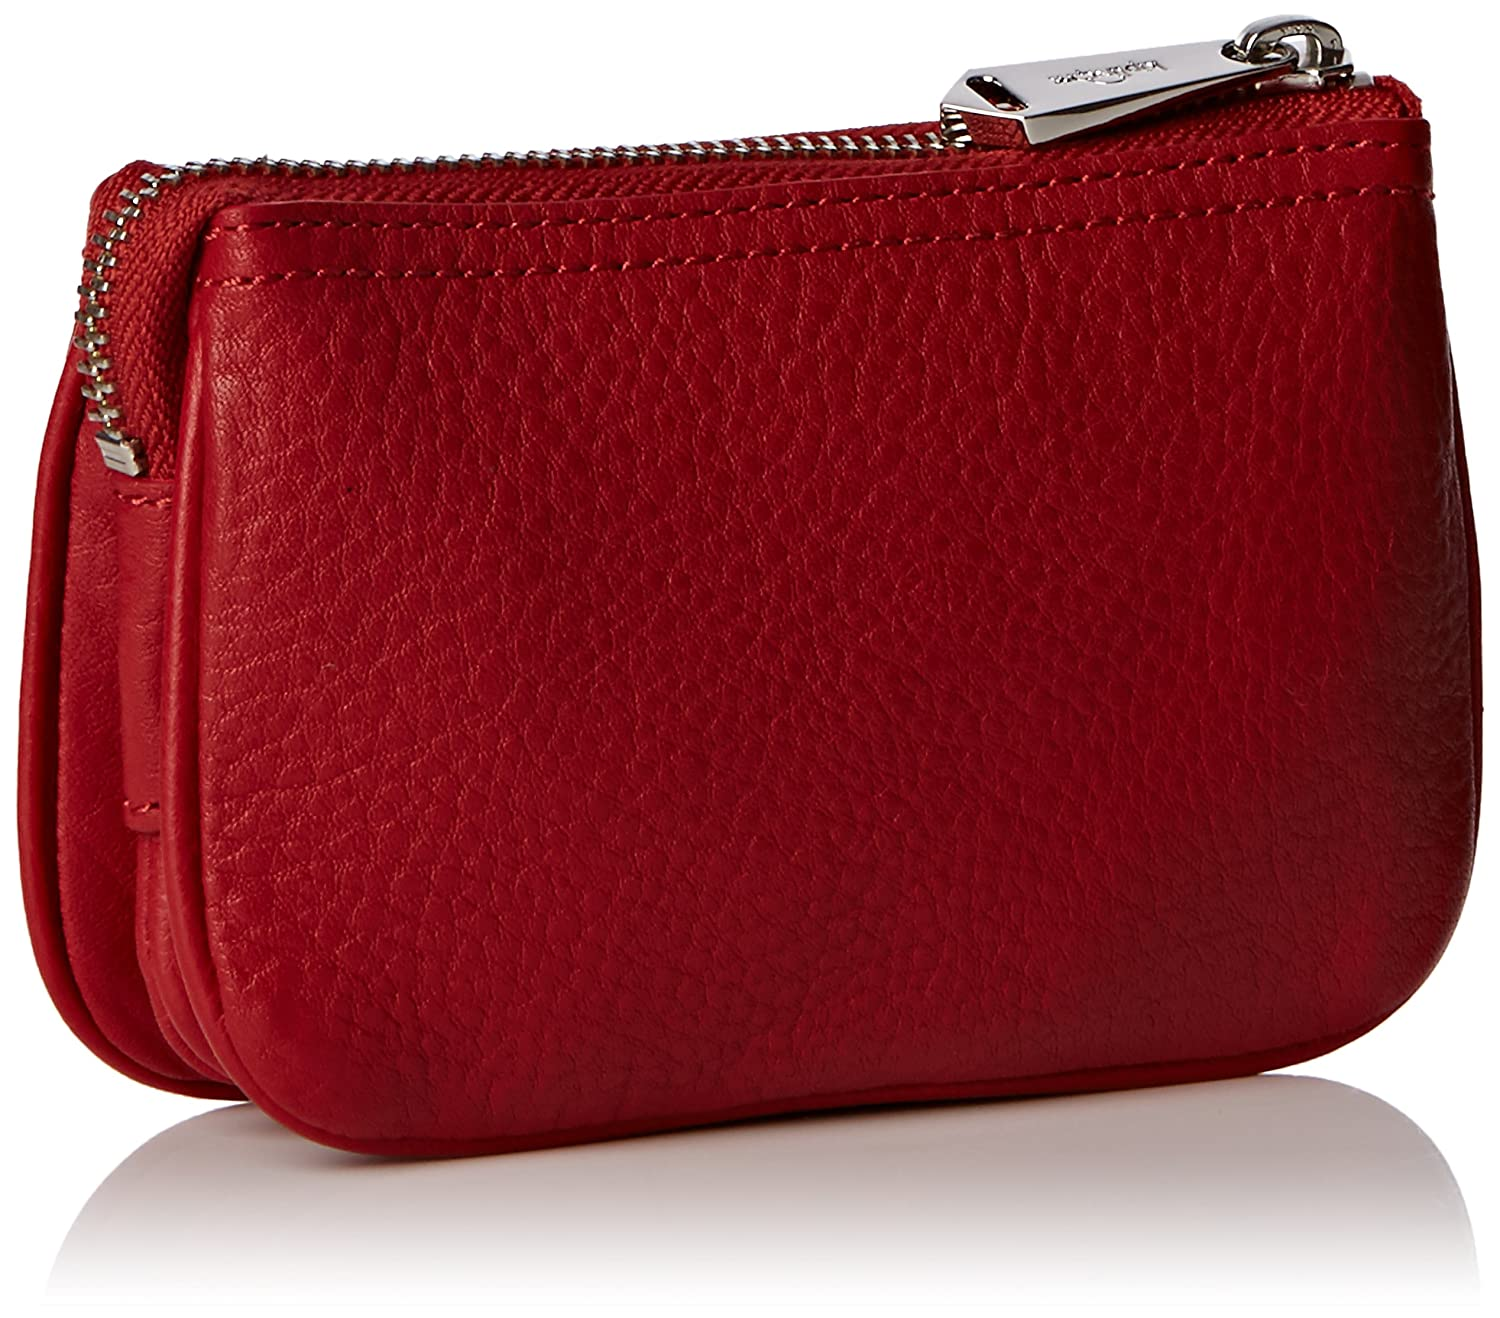 Kipling Monederos, 20 cm, Rojo: Amazon.es: Zapatos y ...